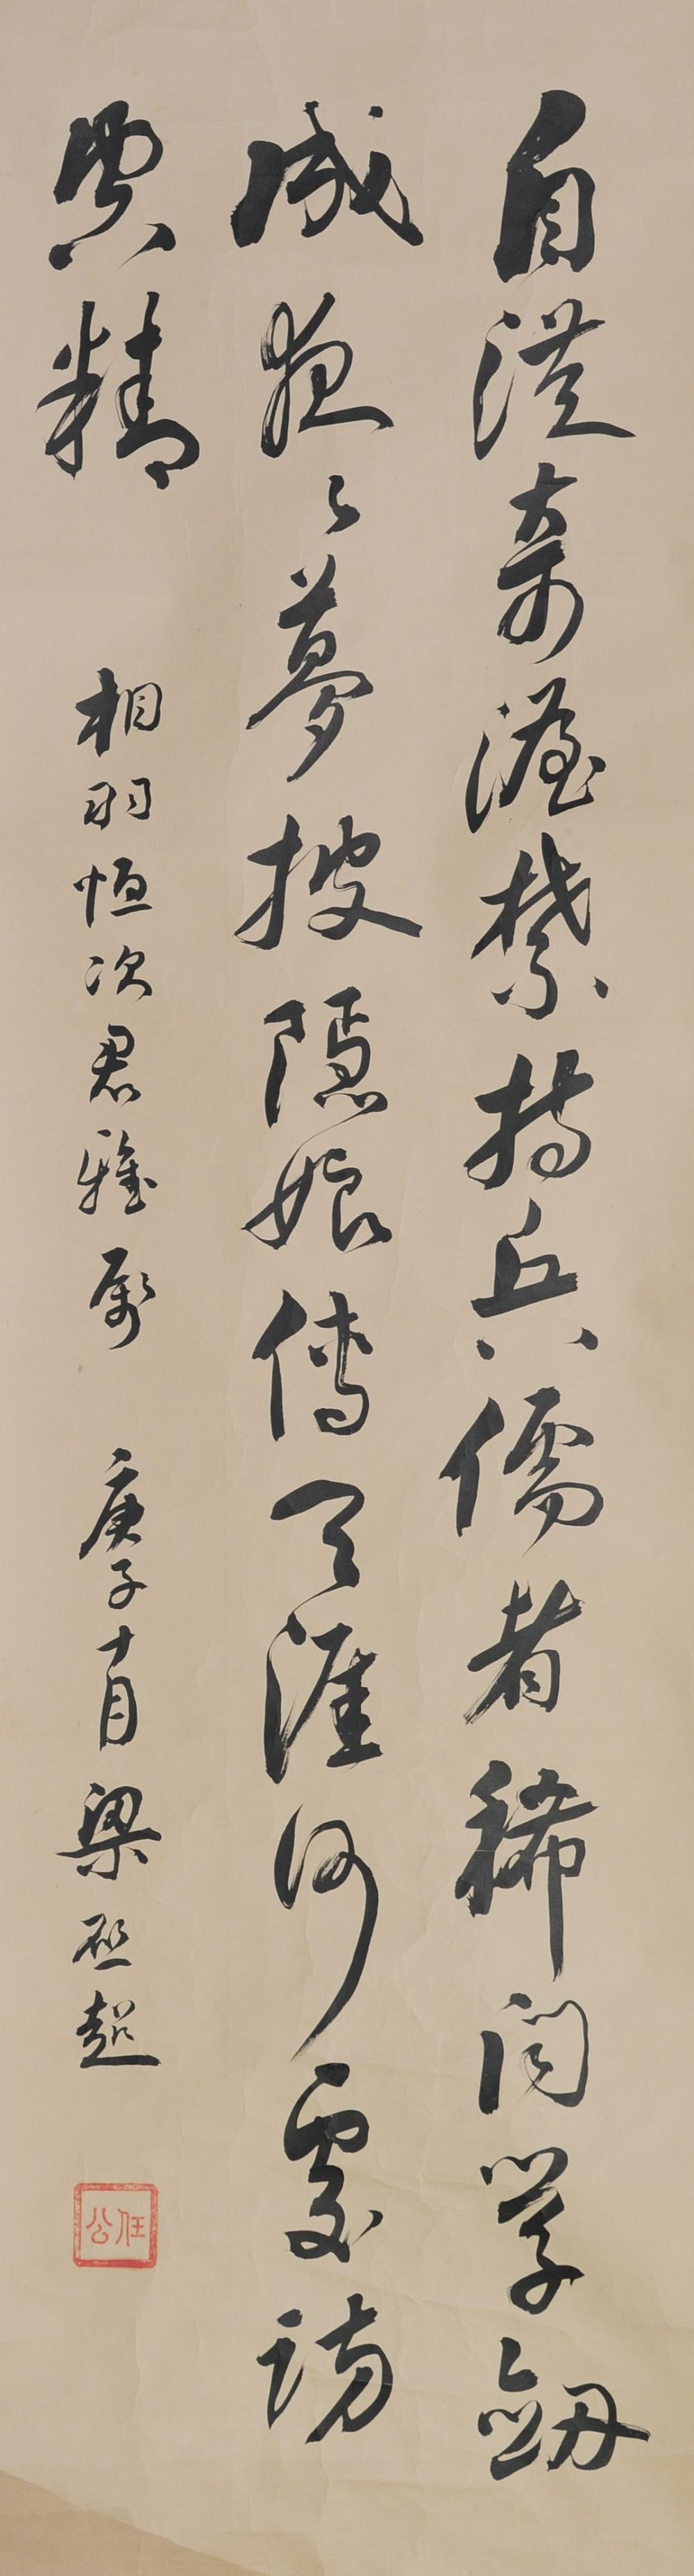 CHINESE CALLIGRAPHY POEM BY LIANG QICHAO